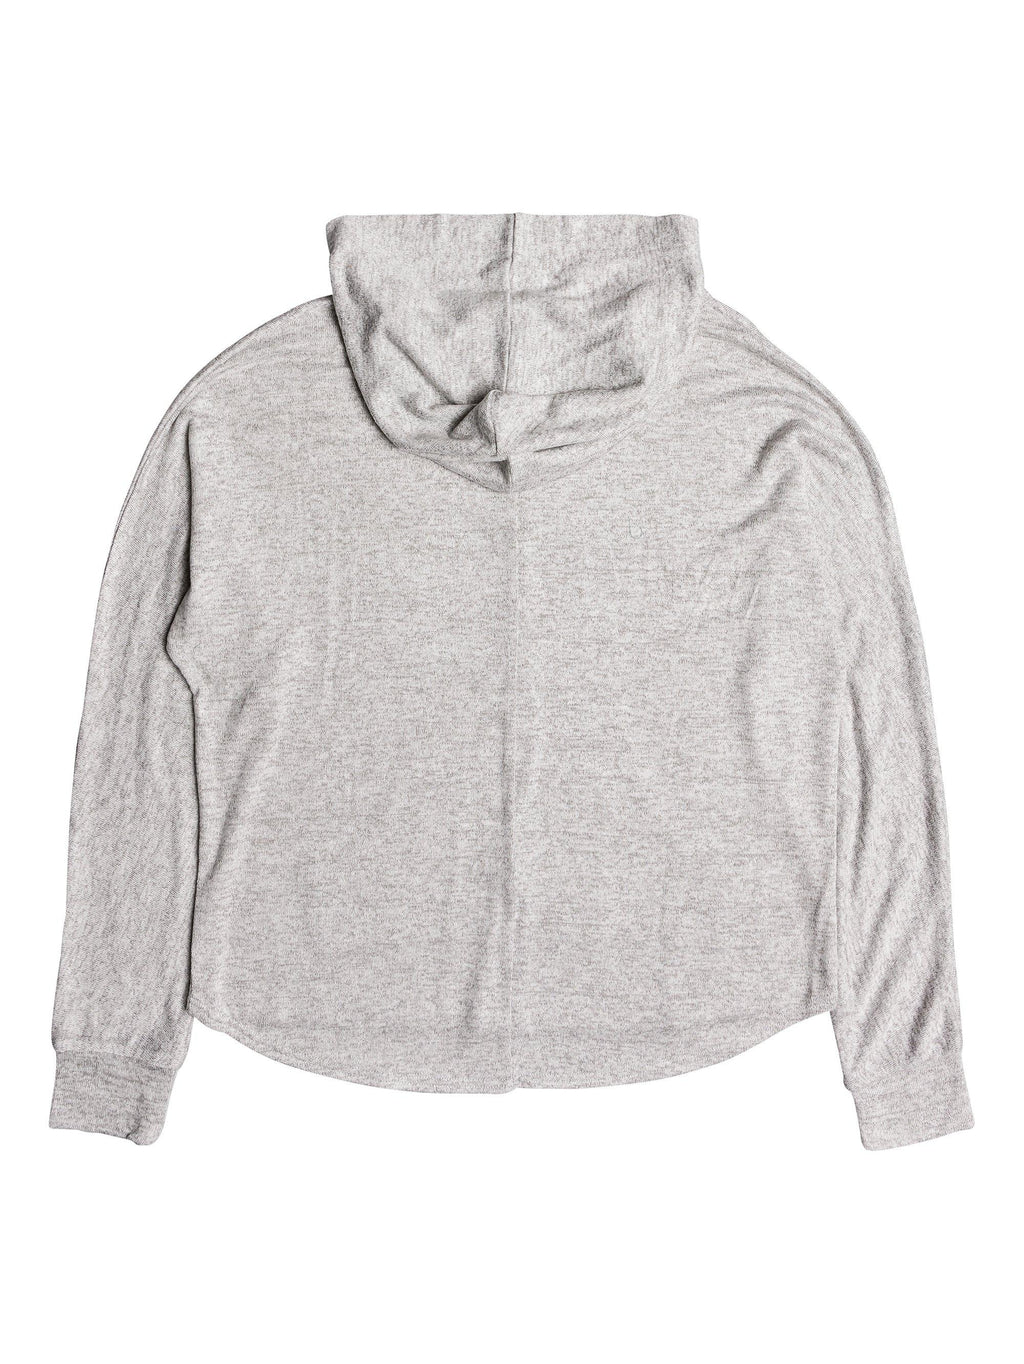 Roxy Secret Path Soft-Touch Hoodie - Women's